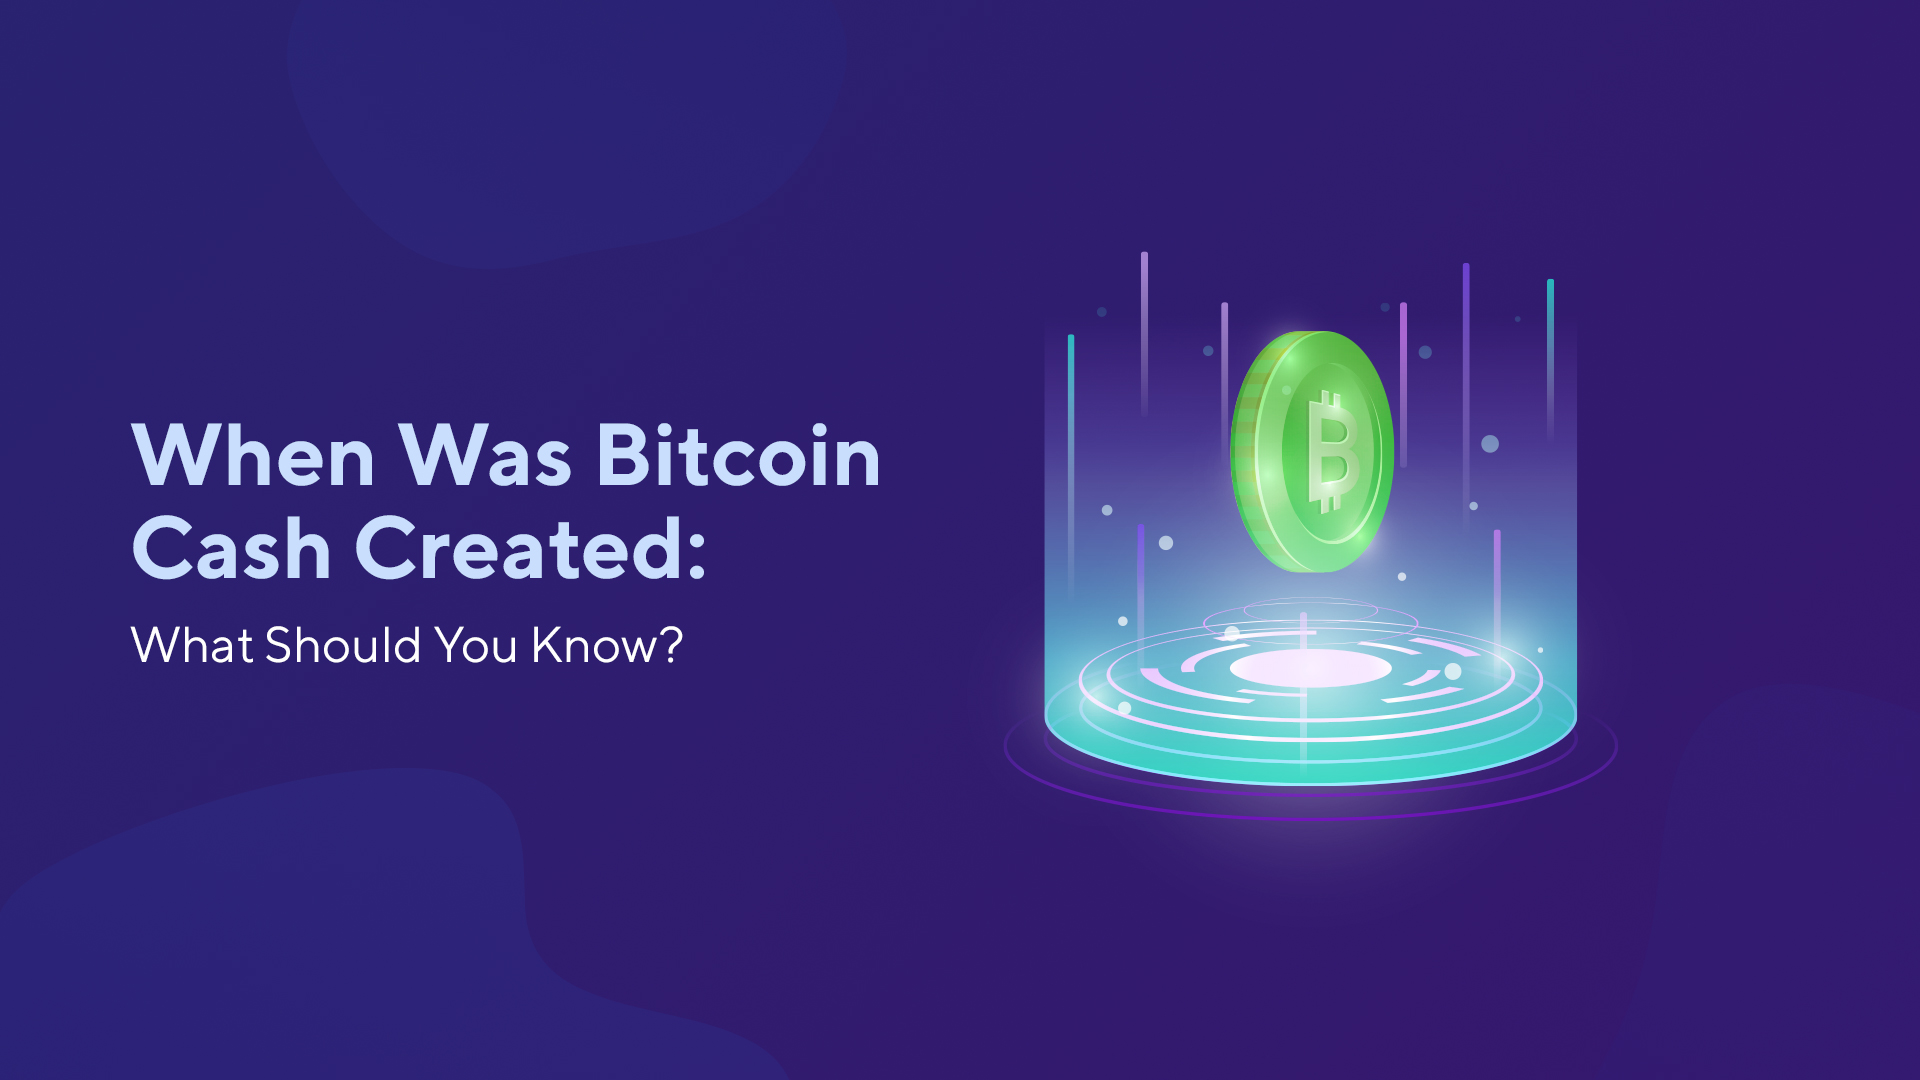 When Was Bitcoin Cash Created: What Should You Know?